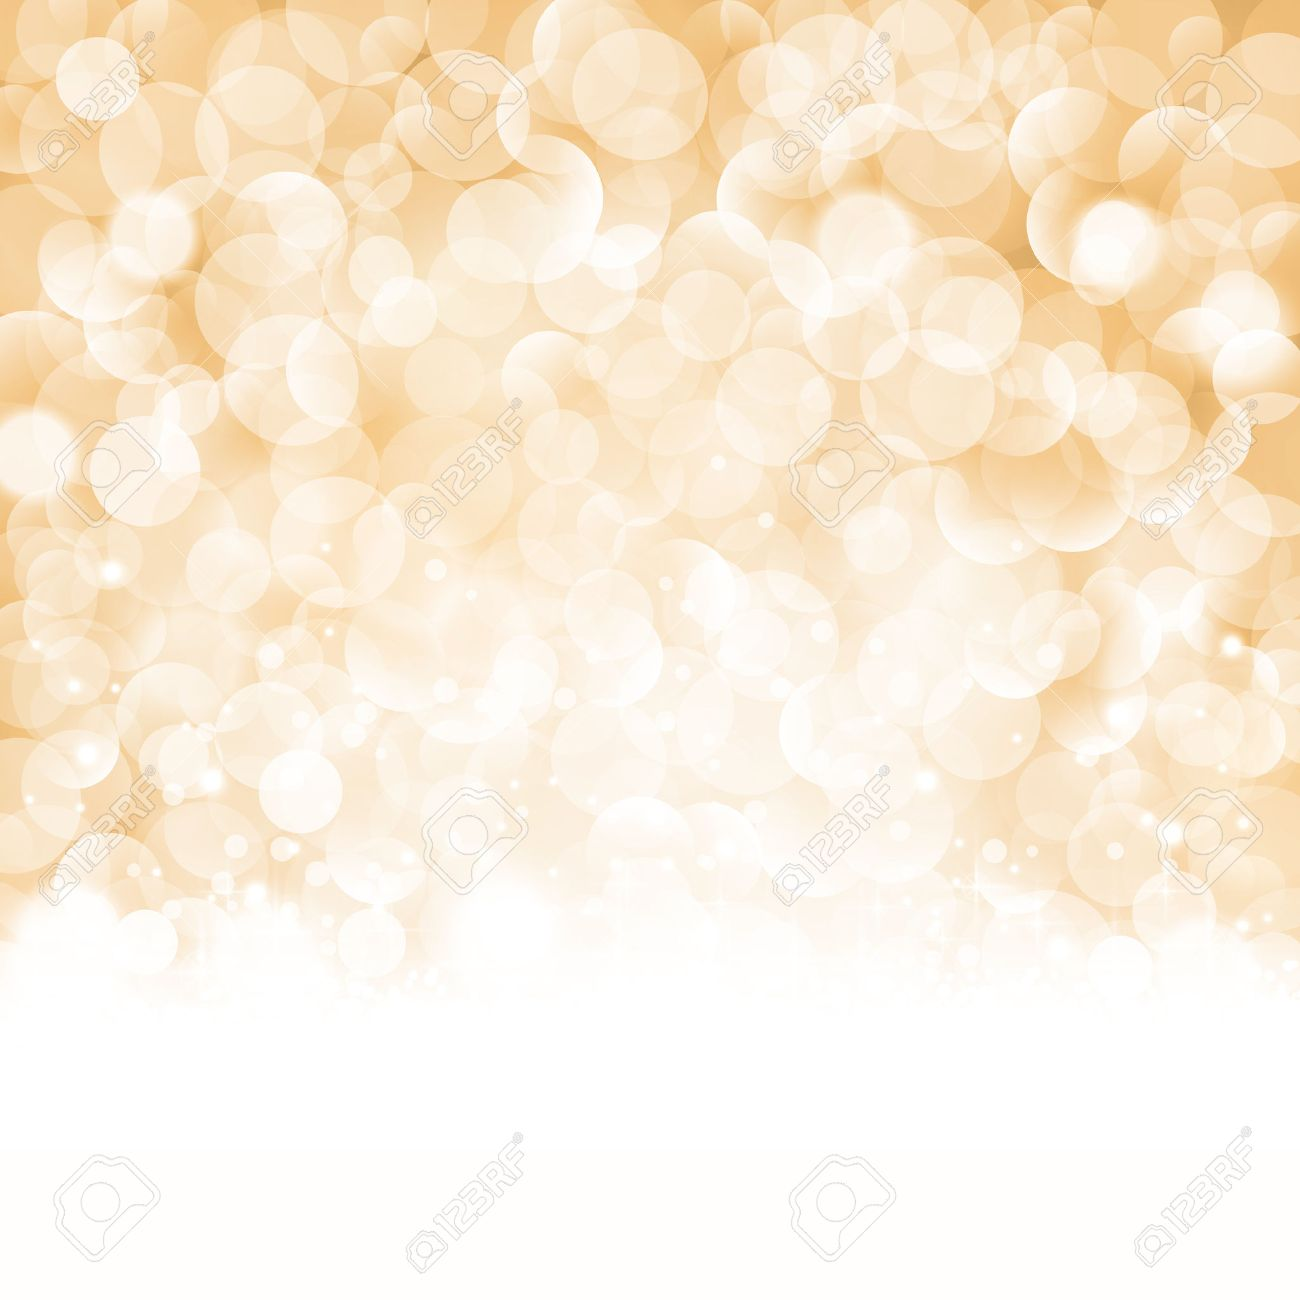 Christmas background with light effects and blurry light dots in shades of beige, golden and white. Centered is a label with the lettering Merry Christmas and Happy New Year. - 33502397